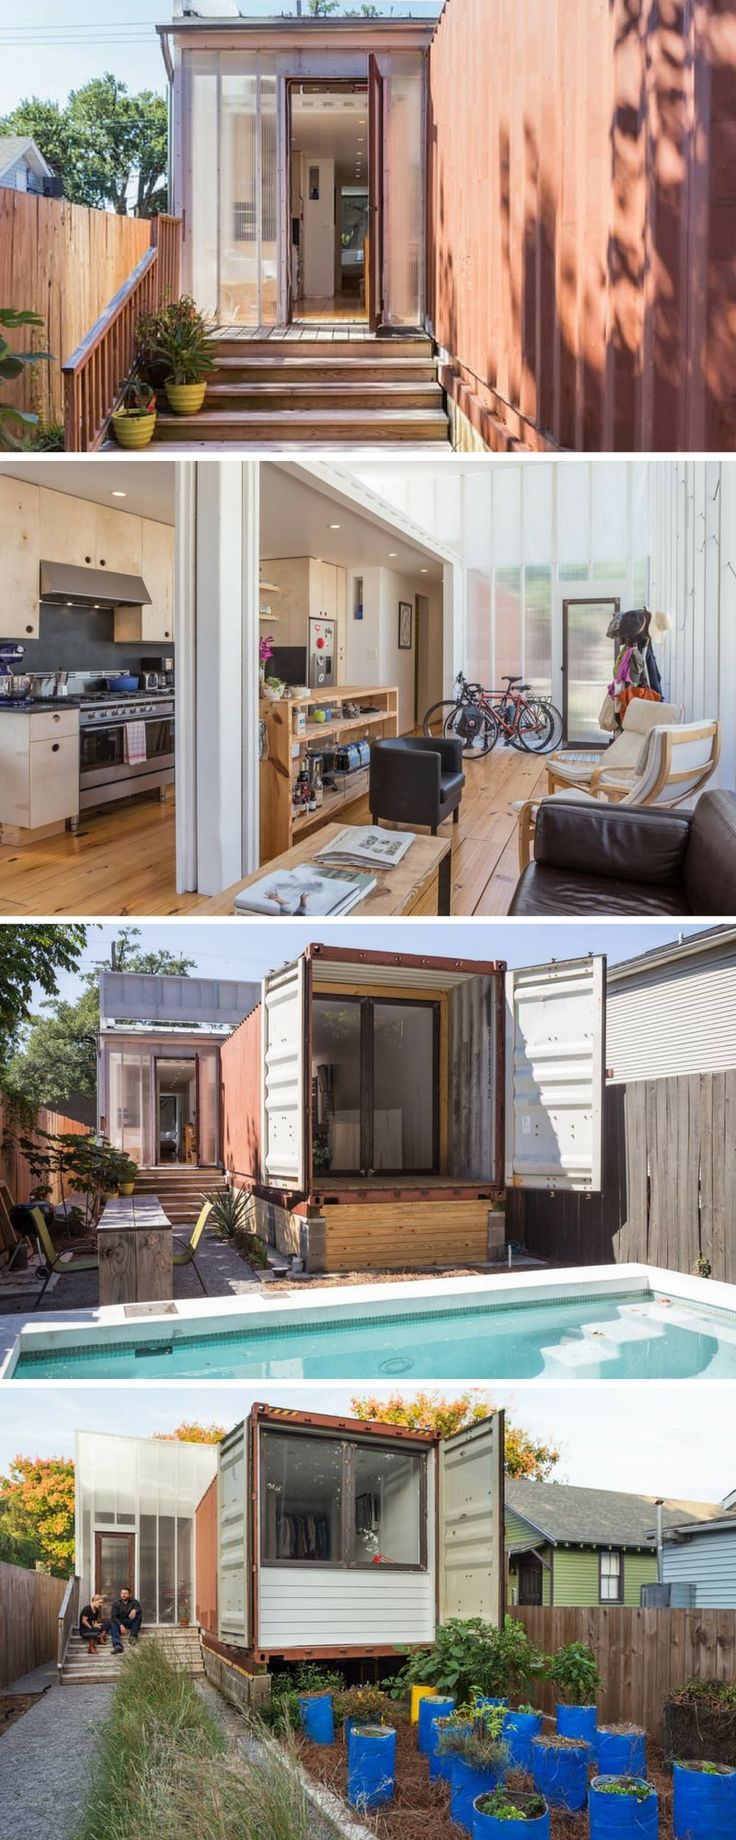 SETH u0026 ELISABETHu0027S SHIPPING CONTAINER HOME 2953